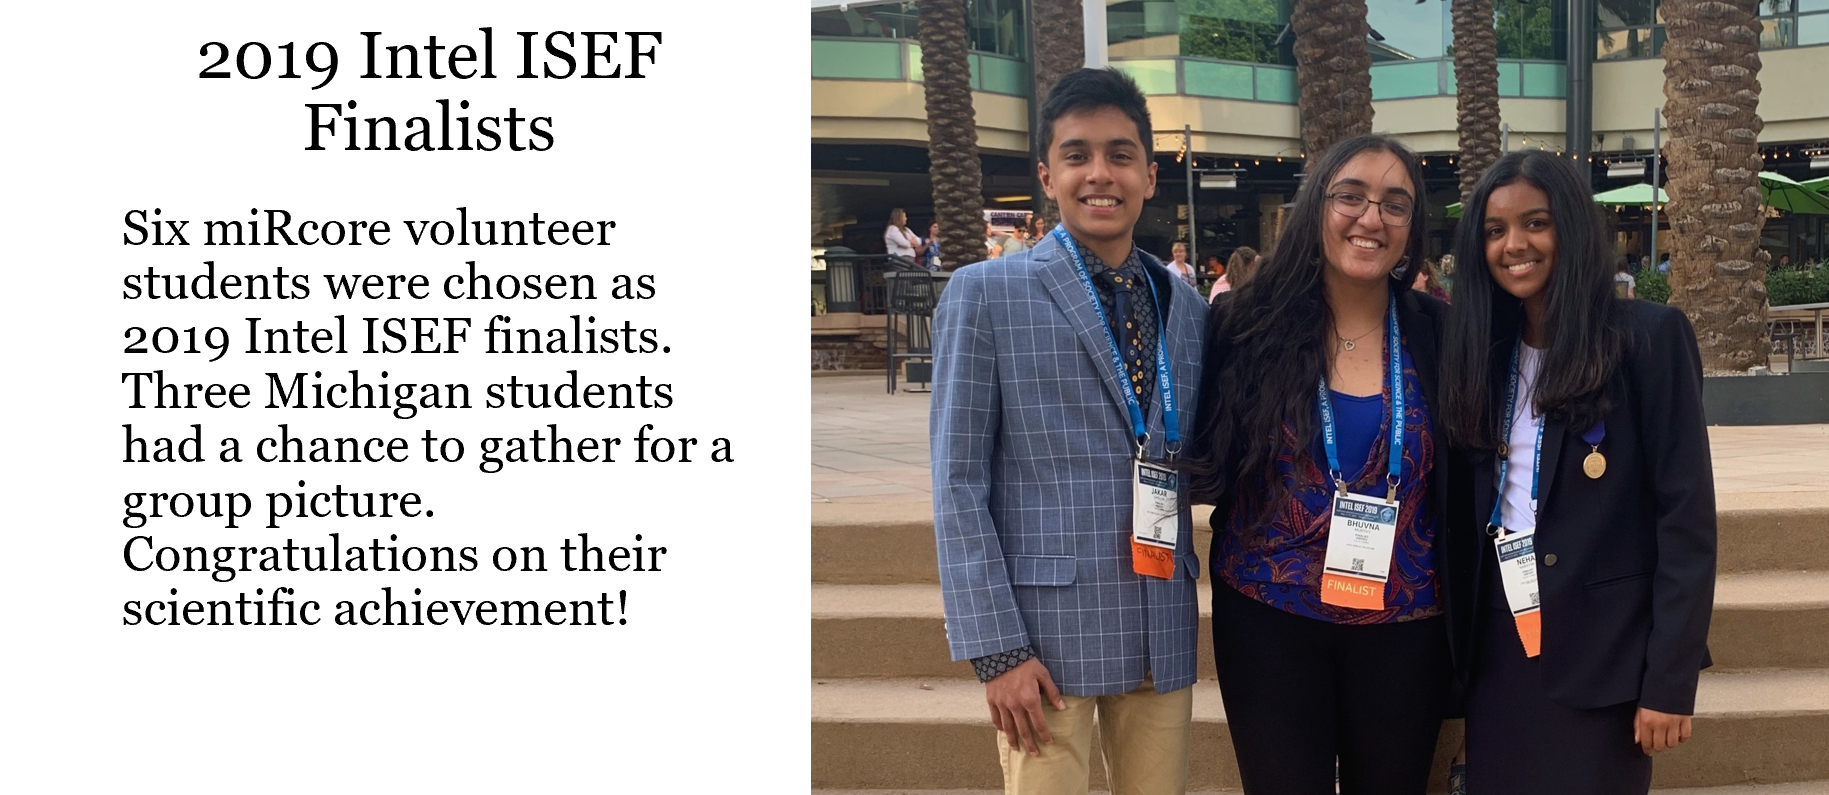 2019-ISEF-w-caption